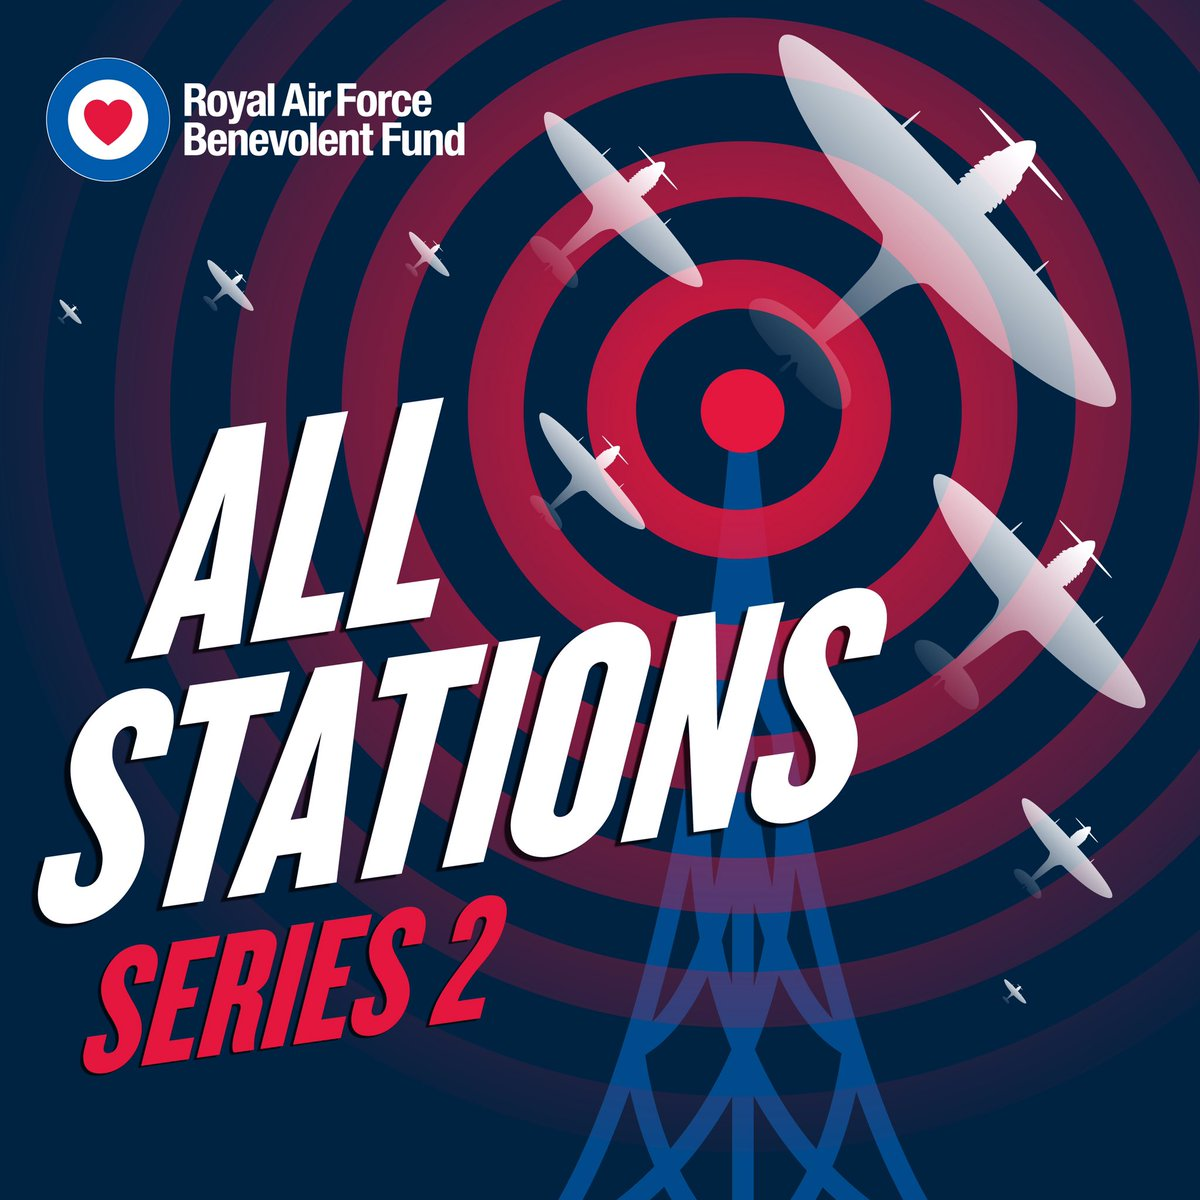 The #BattleofBritain began 80 years ago. Listen to the @RAFBF podcast series All Stations to discover what it was like to be an RAF Spitfire pilot, defending our skies. The #RedArrows are honoured to take part in the podcast - Reds 1 & 2 voice episode one: https://t.co/FcciNvZHNs https://t.co/ruJTnZPVbc